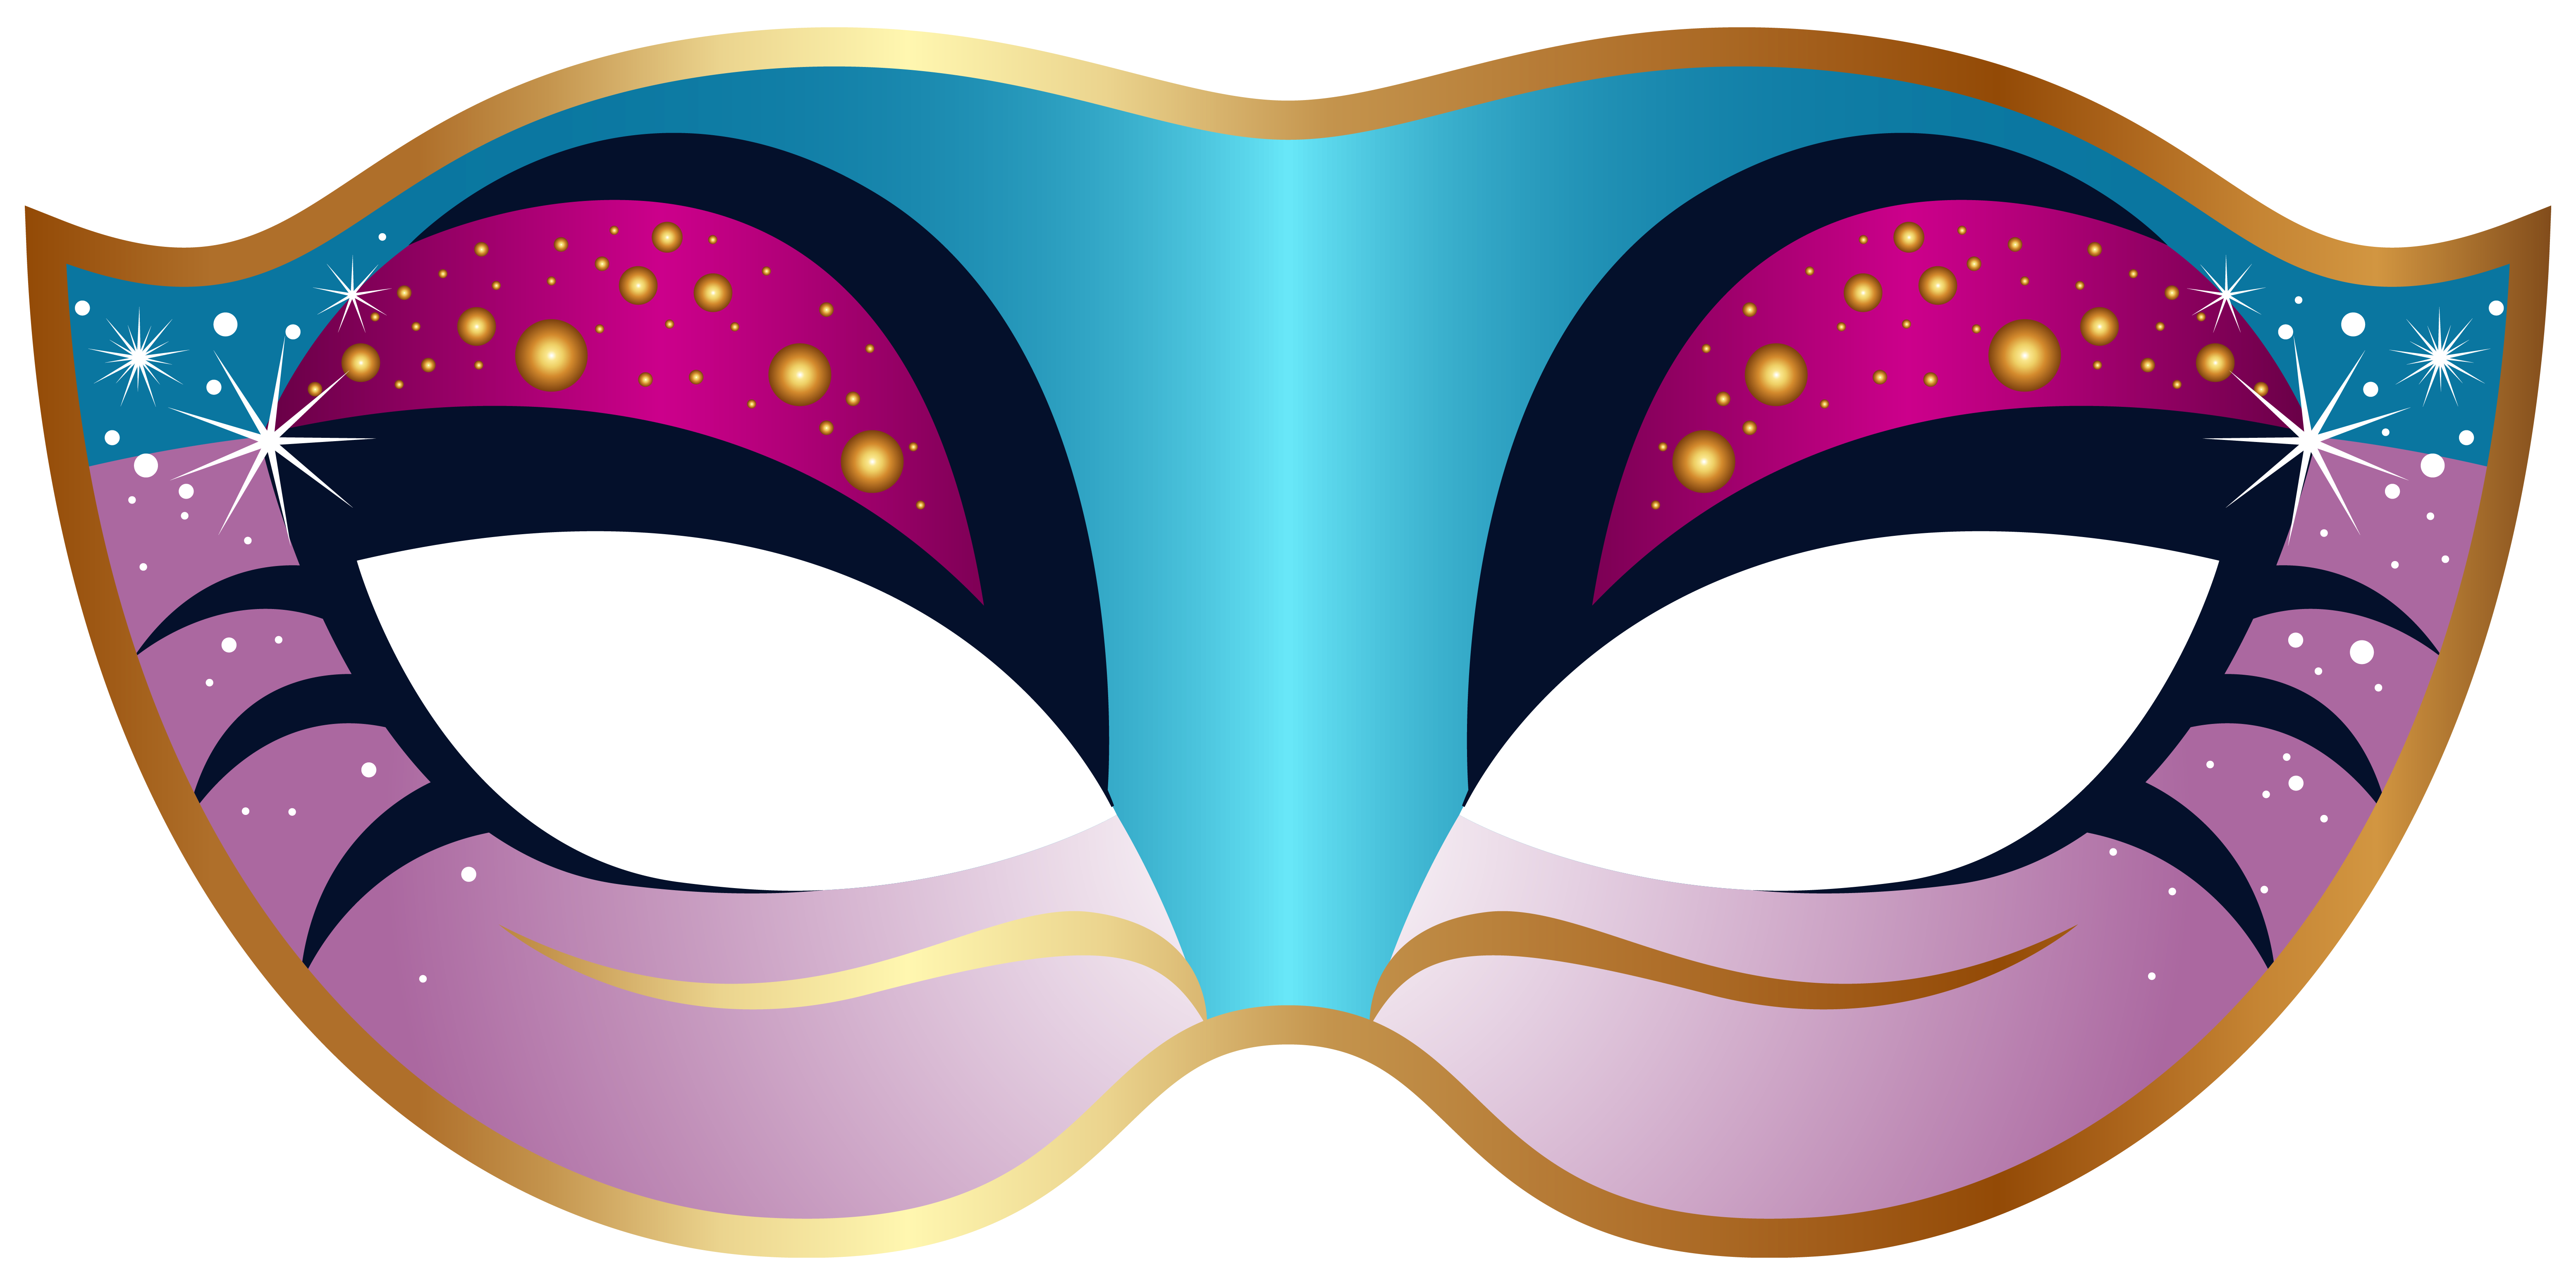 Mask clipart #5, Download drawings